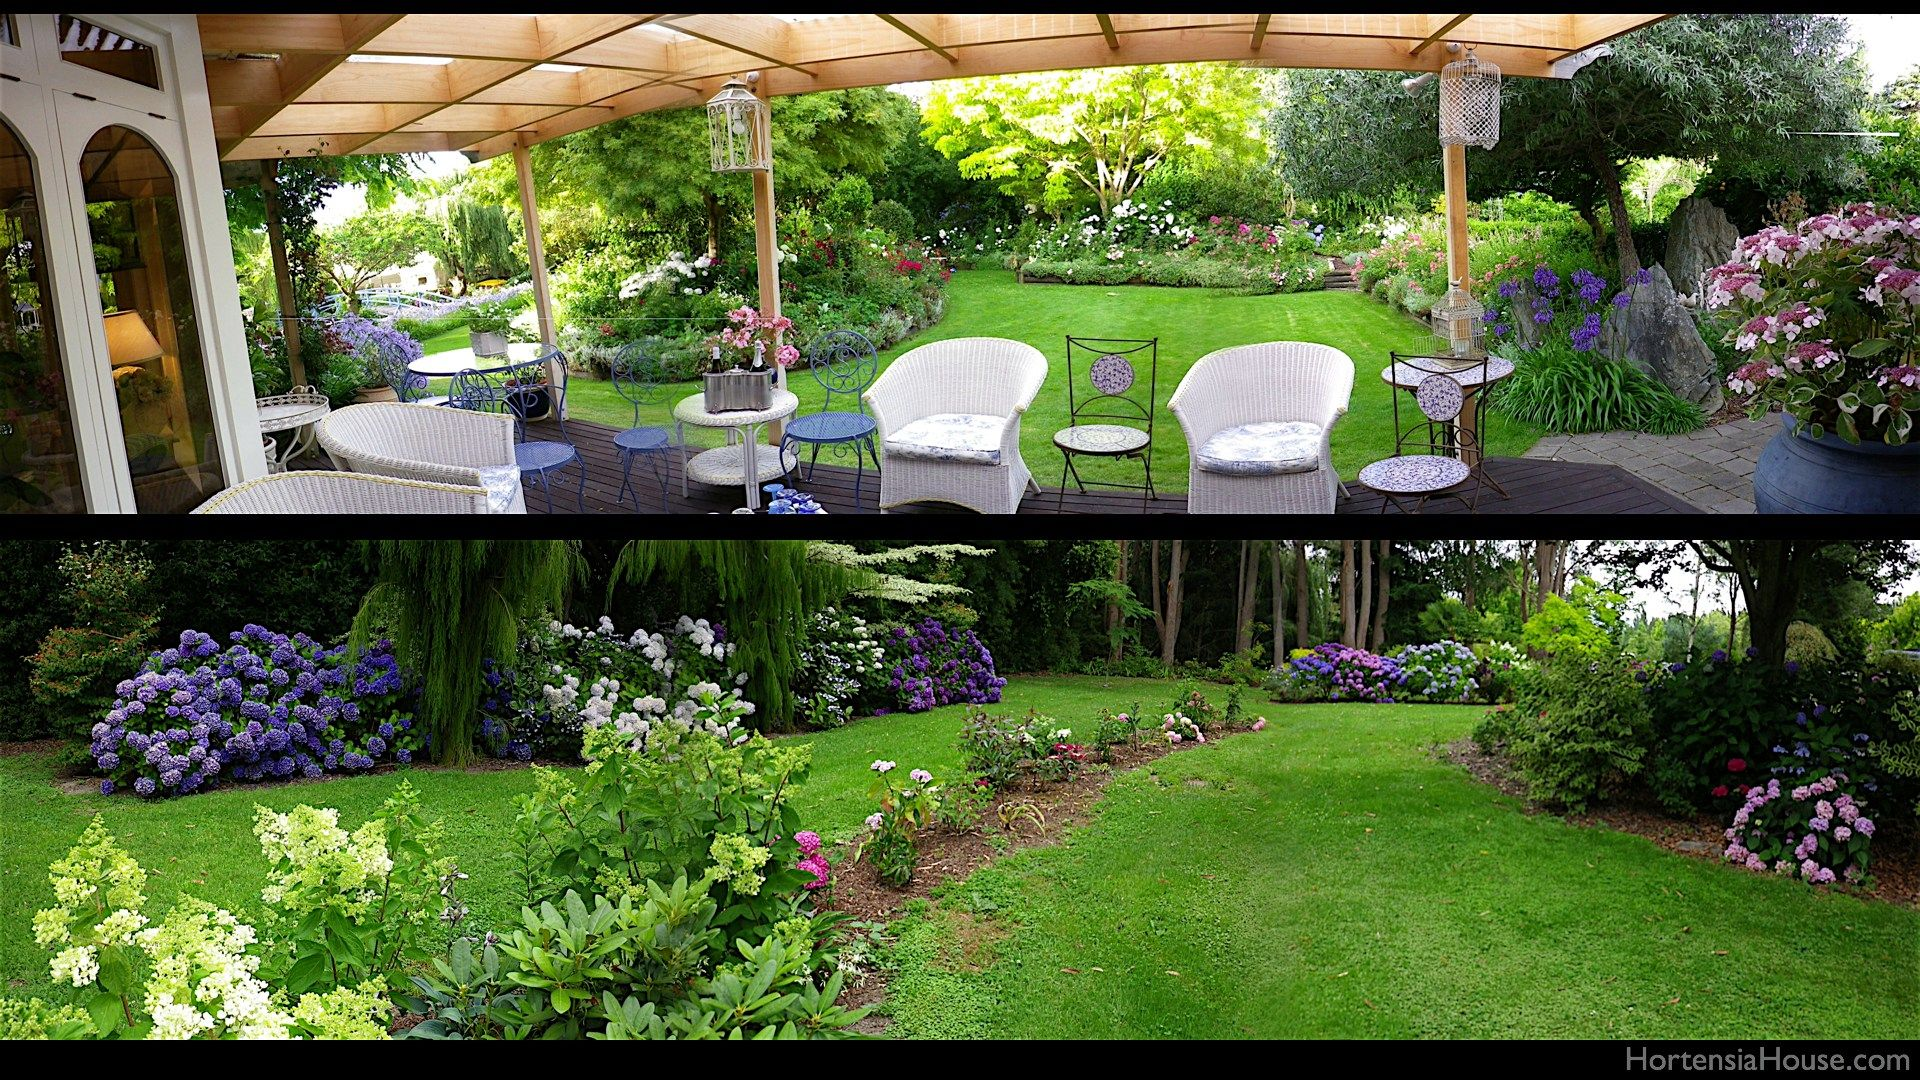 Hortensia house garden blenheim new zealand panoramas for Small garden designs nz